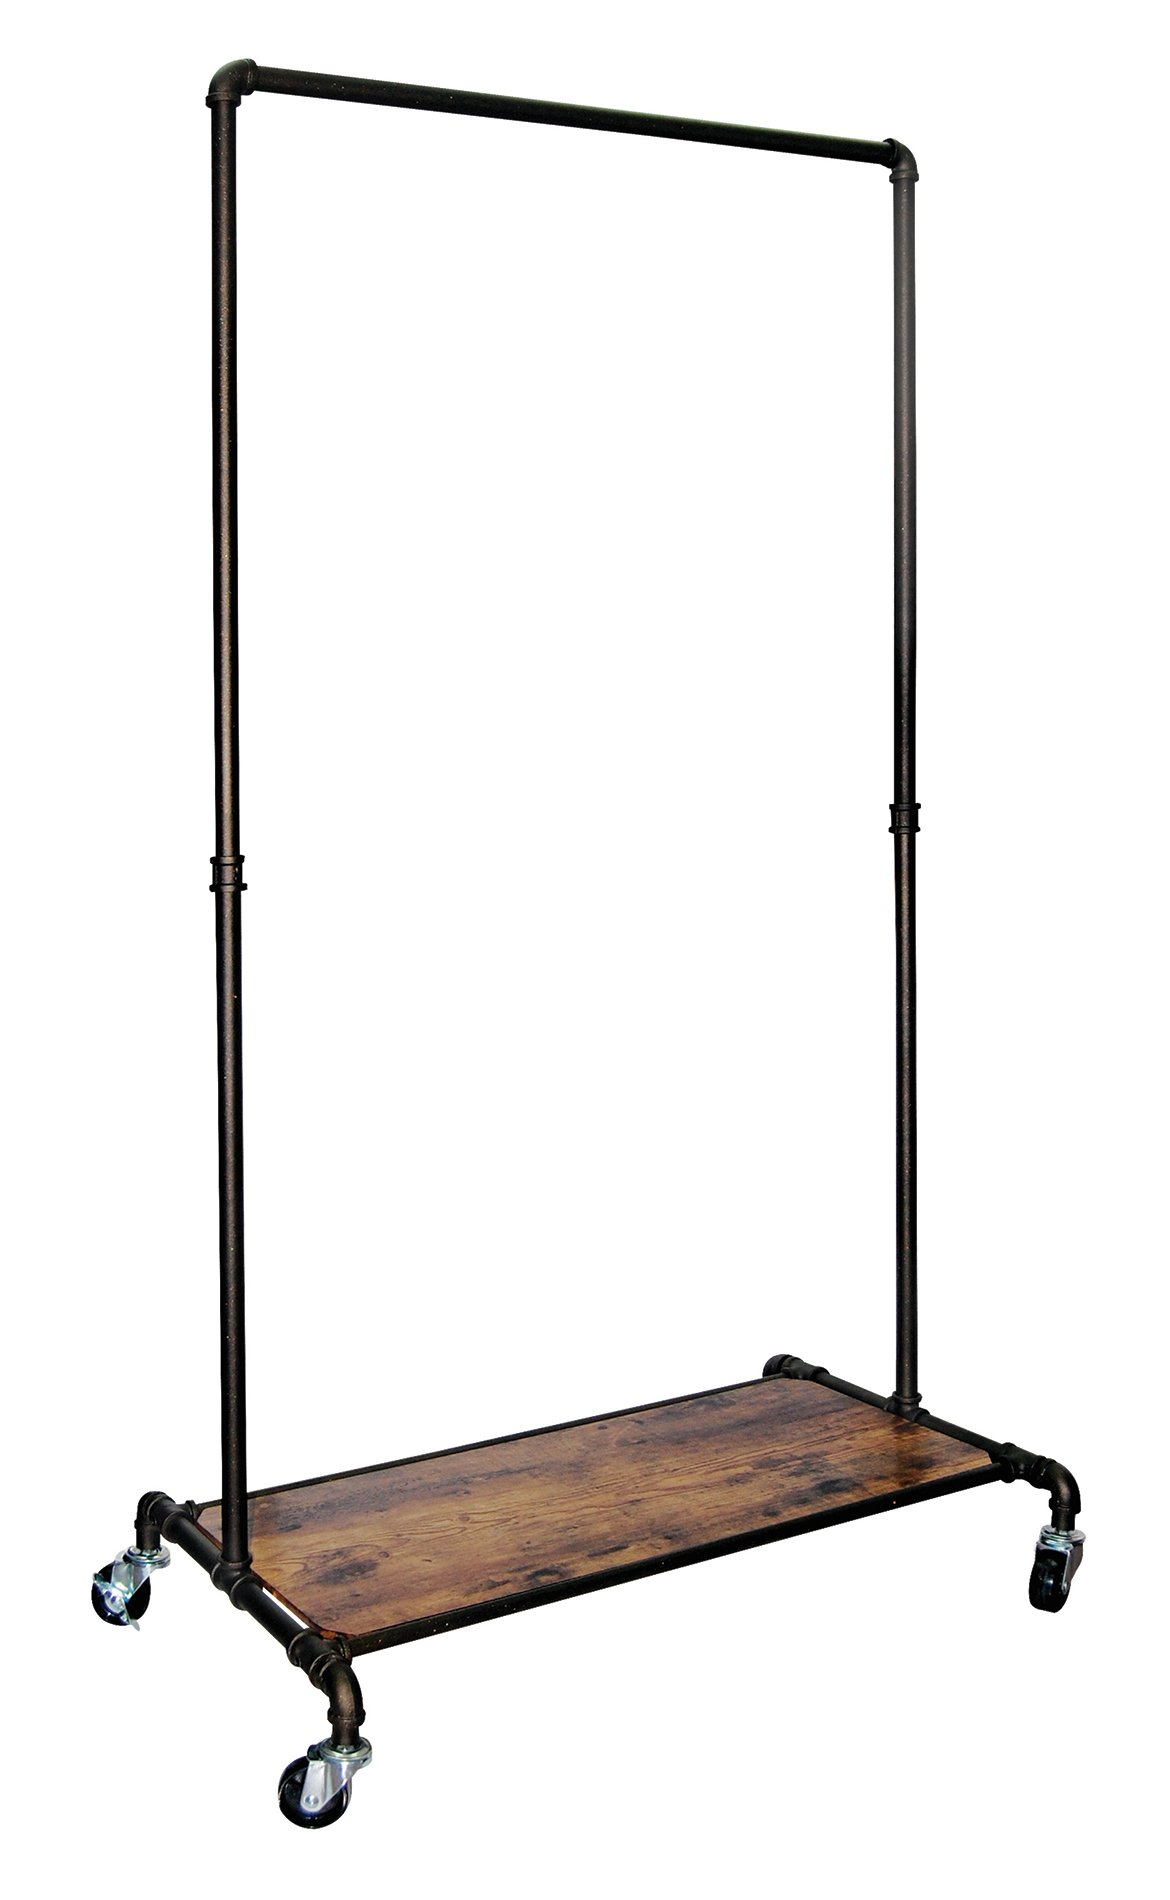 REAL HOME Innovations 028-28004 Real Home Modern Industrial Style Garment Rack with Wood Shelf,Satin Pewter Finish